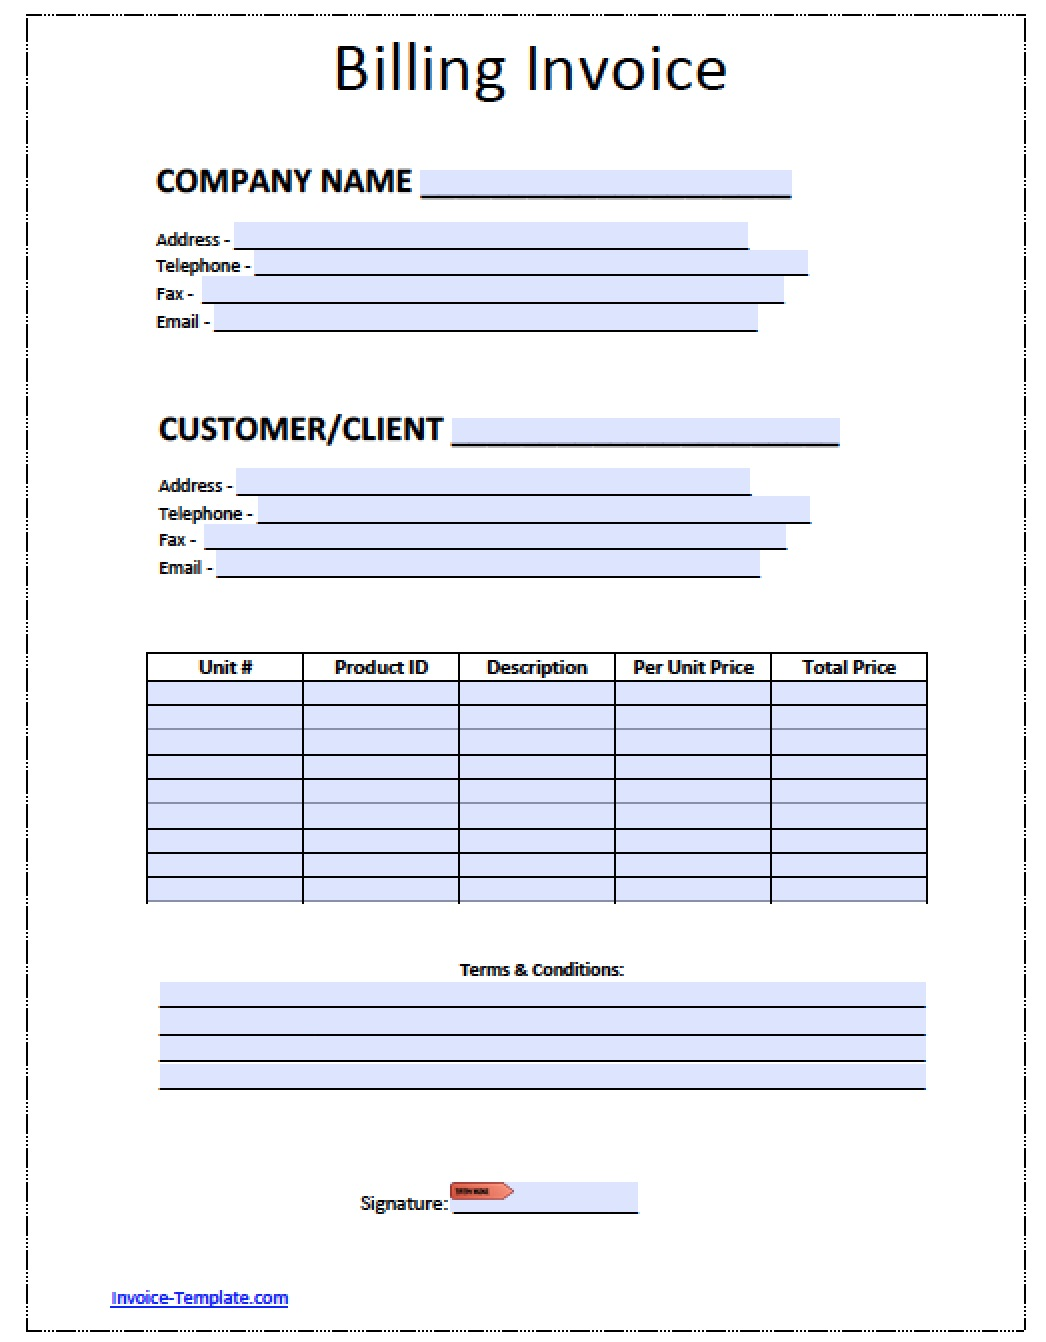 Carsforlessus  Nice Billing Invoice Invoices Faq U Cloudflare Support Billing  With Exciting Free Billing Invoice Template  Excel  Pdf  Word Doc  Billing With Astounding Invoice For Contract Work Also Invoice Factoring Services In Addition Blank Service Invoice And Free Auto Repair Invoice As Well As Work Order Invoice Template Additionally Word Invoice Template Free From Happytomco With Carsforlessus  Exciting Billing Invoice Invoices Faq U Cloudflare Support Billing  With Astounding Free Billing Invoice Template  Excel  Pdf  Word Doc  Billing And Nice Invoice For Contract Work Also Invoice Factoring Services In Addition Blank Service Invoice From Happytomco